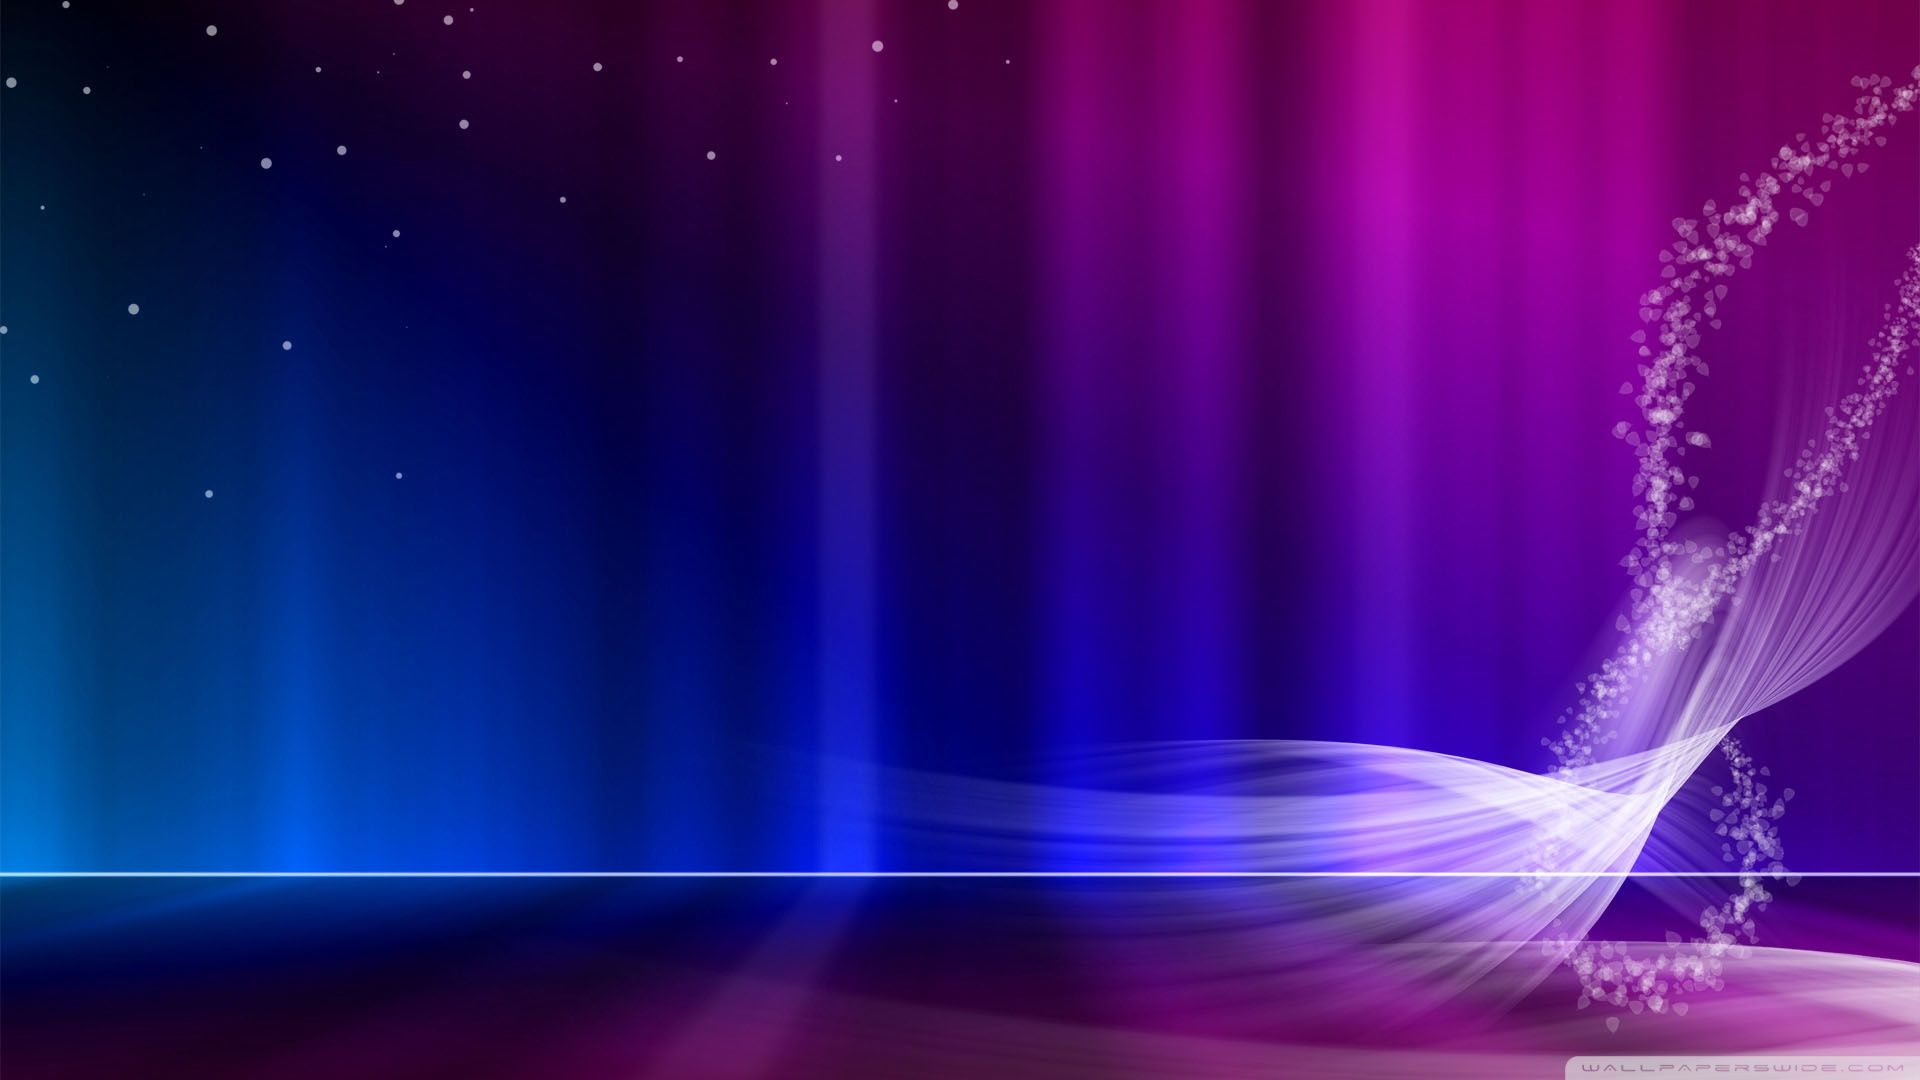 Blue And Purple Wallpapers Top Free Blue And Purple Backgrounds